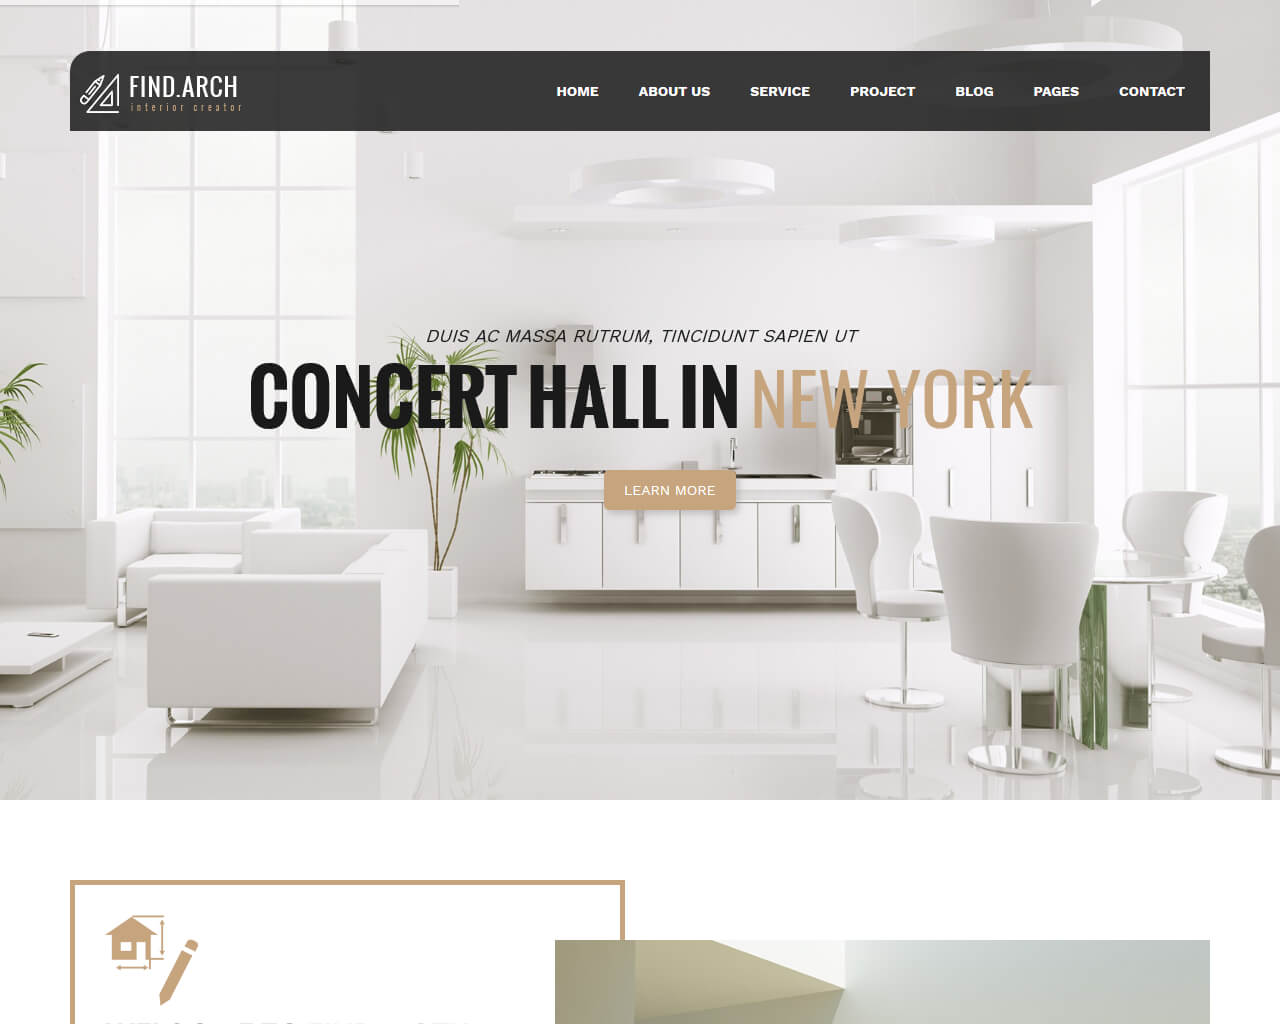 Design Interieur Blog 20 Eye Catching Interior Design Website Templates 2019 Templatemag